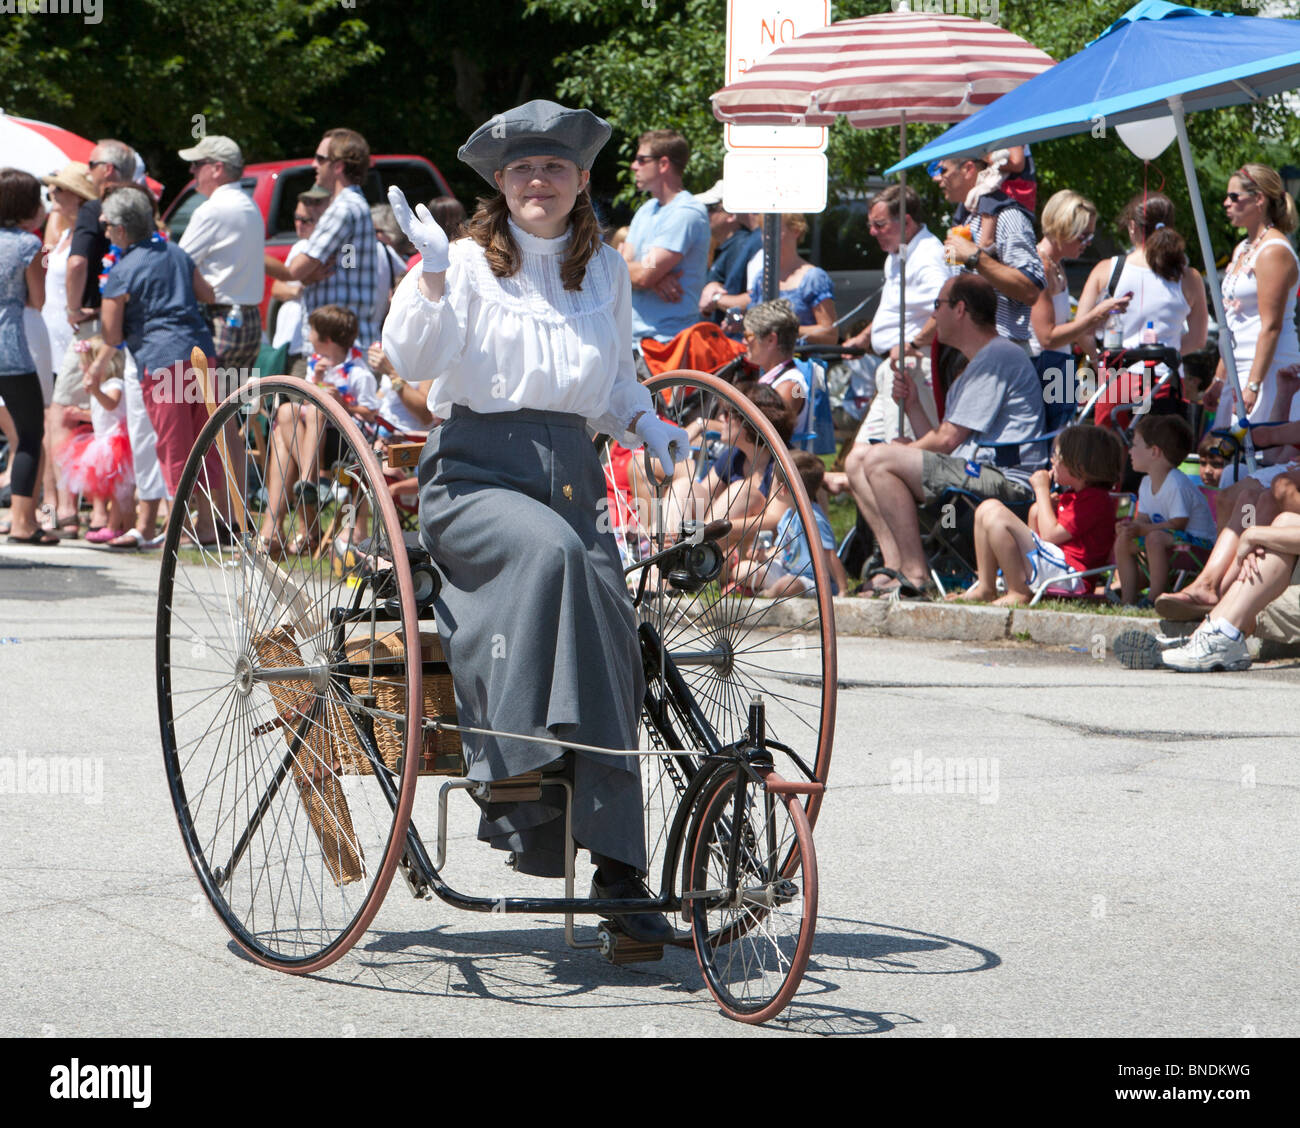 Amherst, New Hampshire - Antique tricycle in the July 4 parade in a small New England town. - Stock Image